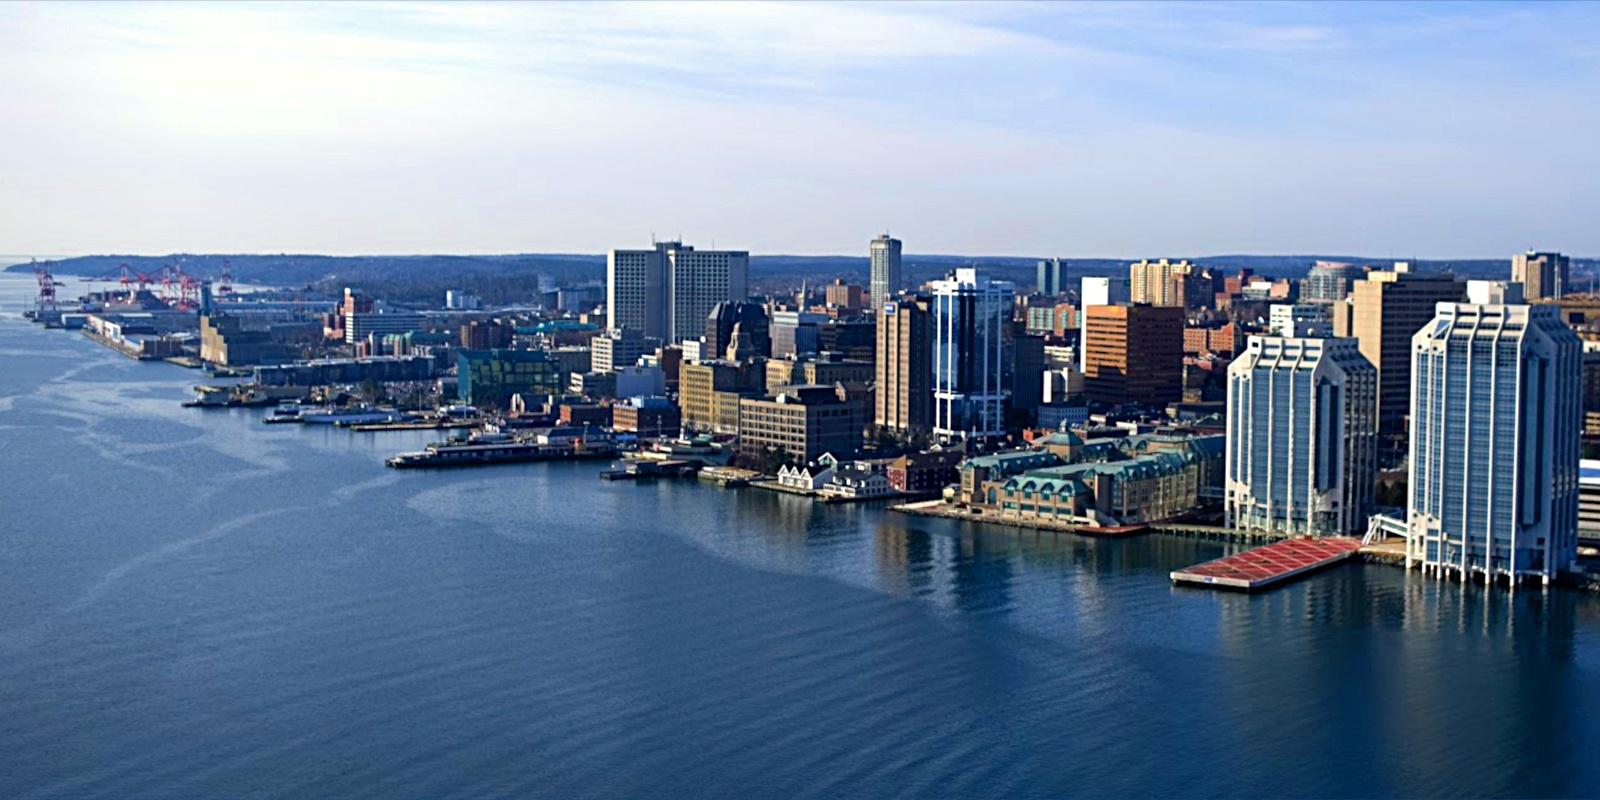 The gorgeous Halifax waterfront appears to have been carved from the rocky, rugged Nova Scotia coastline.